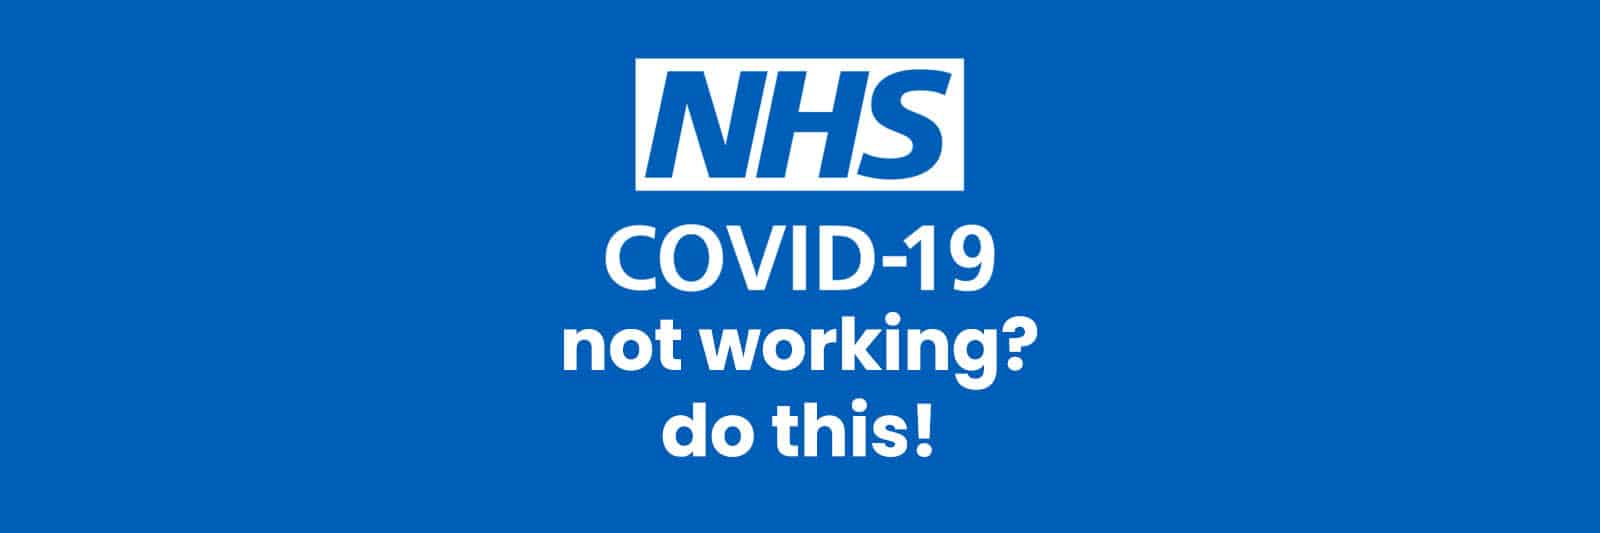 nhs-covid-app-not-working